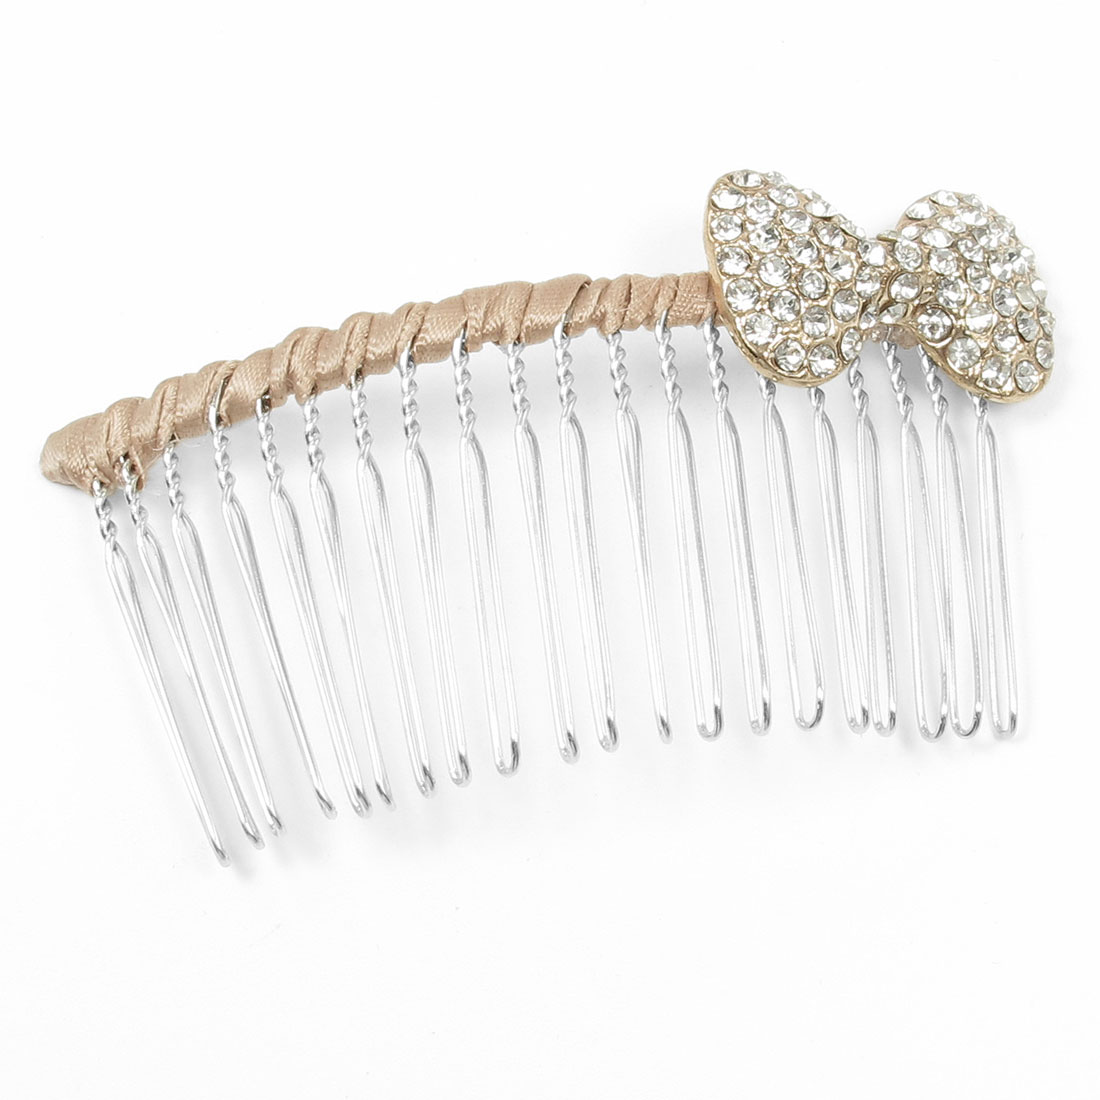 Butterfly Decor Metal Teeth Khaki Silver Tone Hair Comb Clip for Woman Ladies